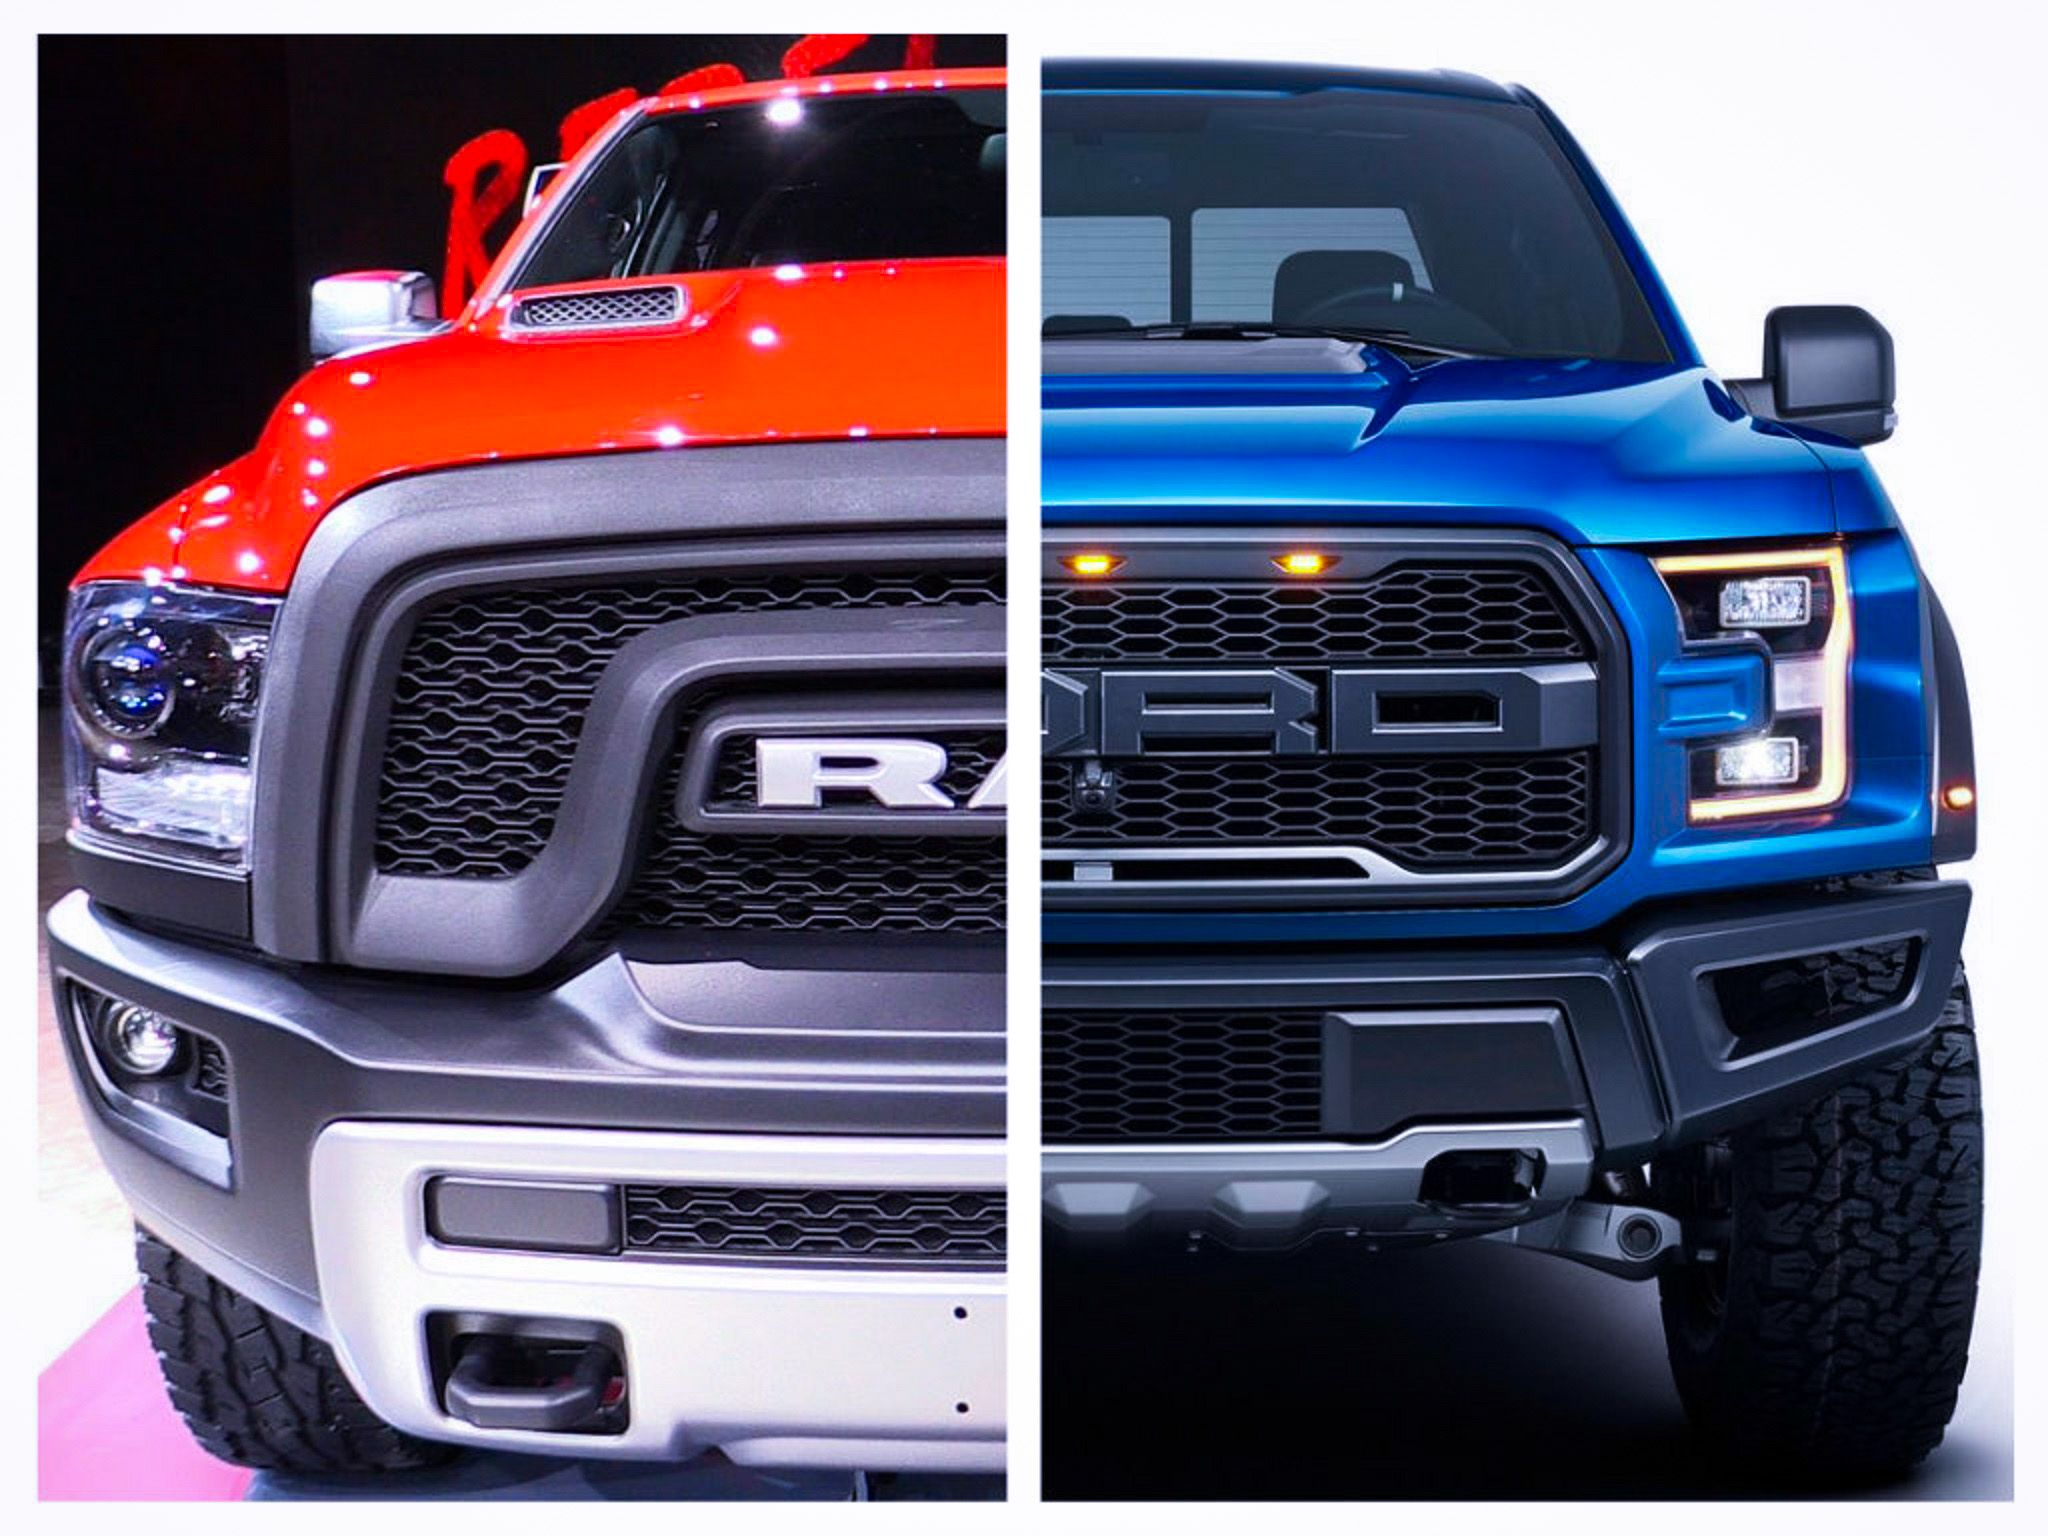 2017 ford f 150 raptor vs 2016 ram 1500 rebel